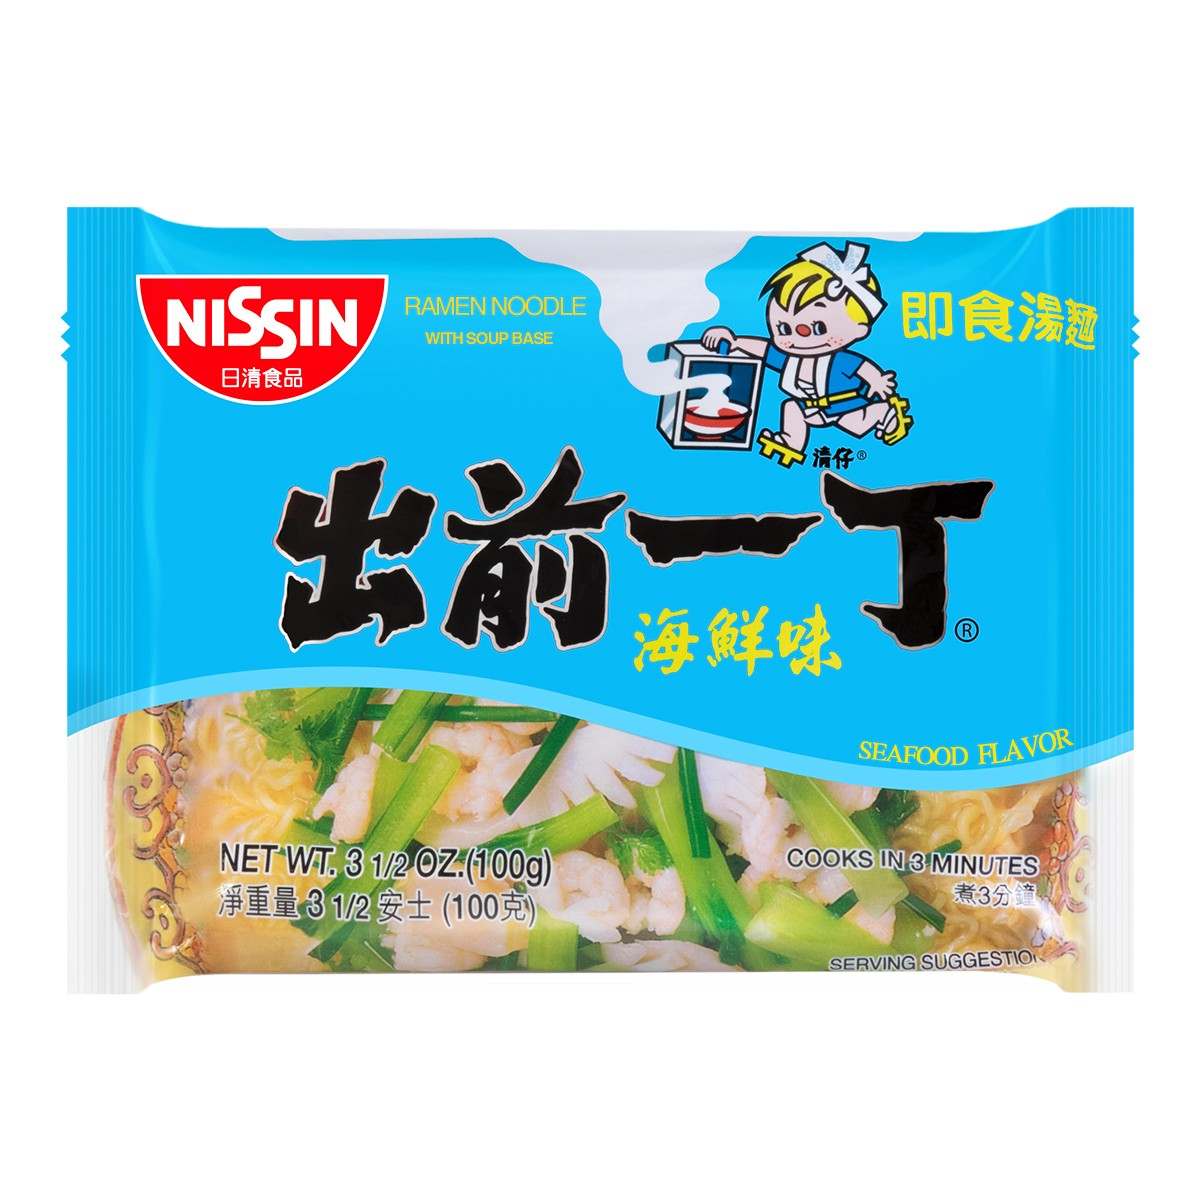 NISSIN Demae Ramen Noodle with Soup Base Seafood Flavor 100g